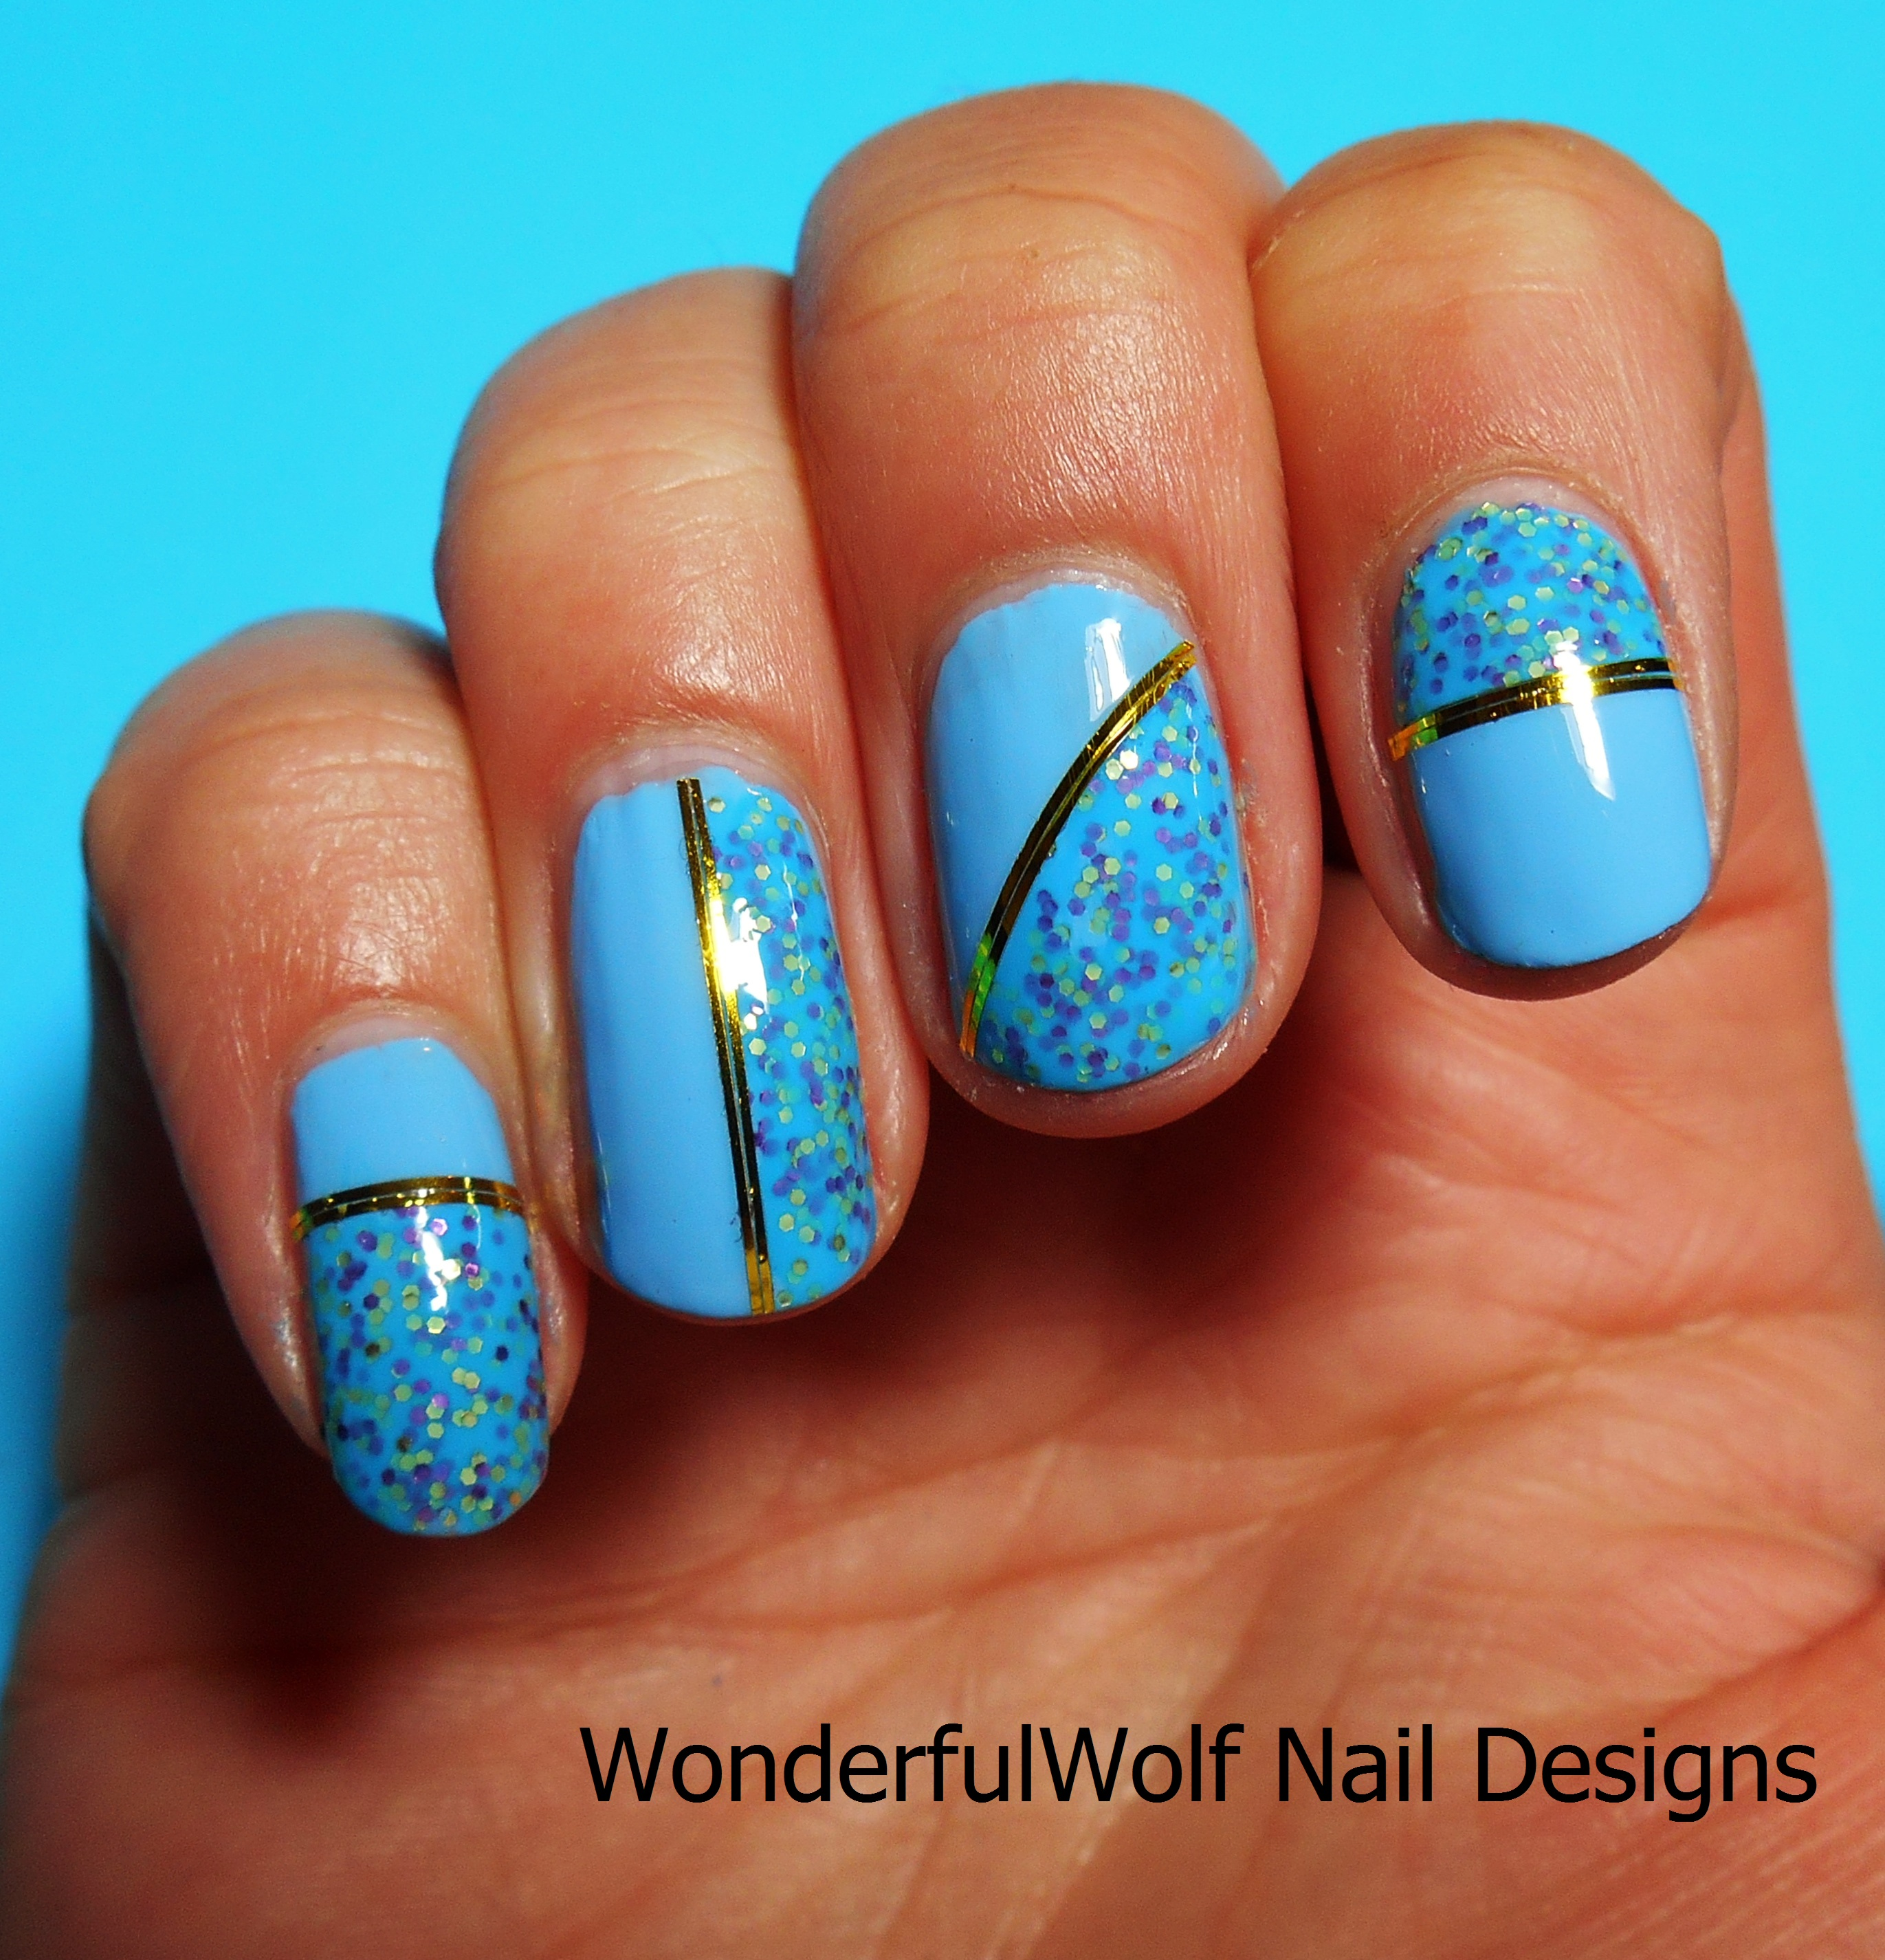 Outstanding Nails Designs With Tape Photo - Nail Art Design Ideas ...